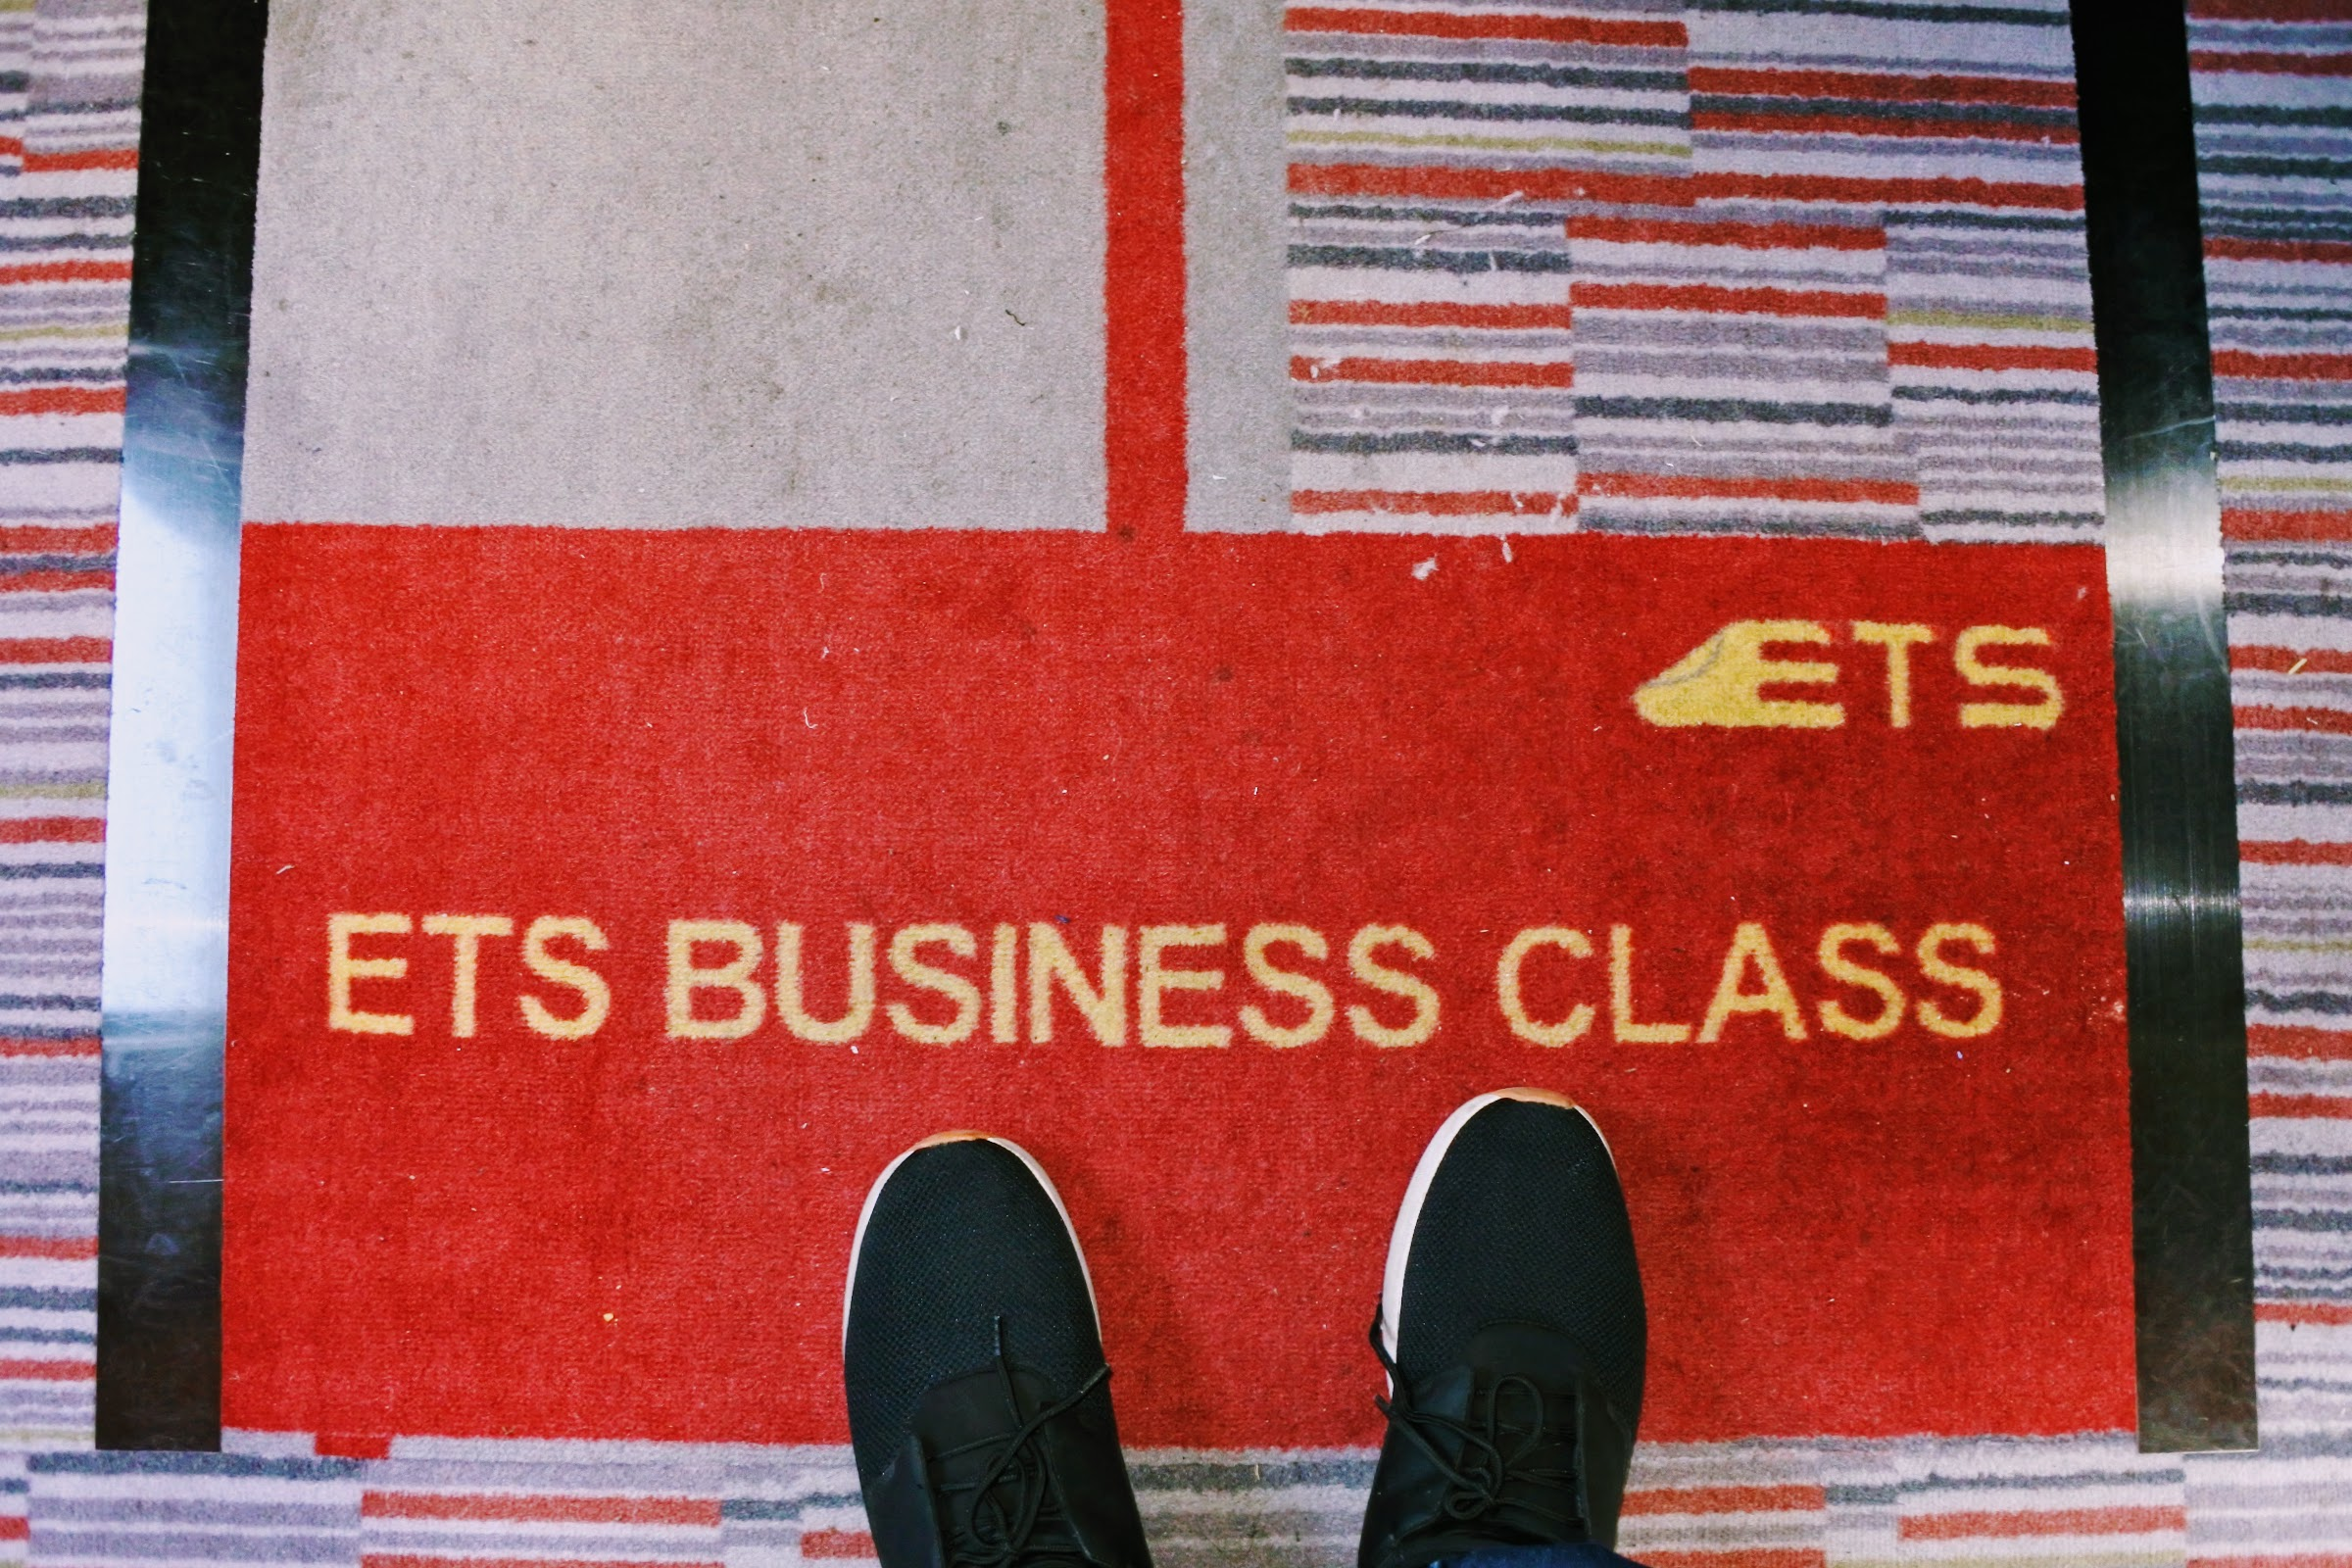 Our ETS Business Class comprehensive review